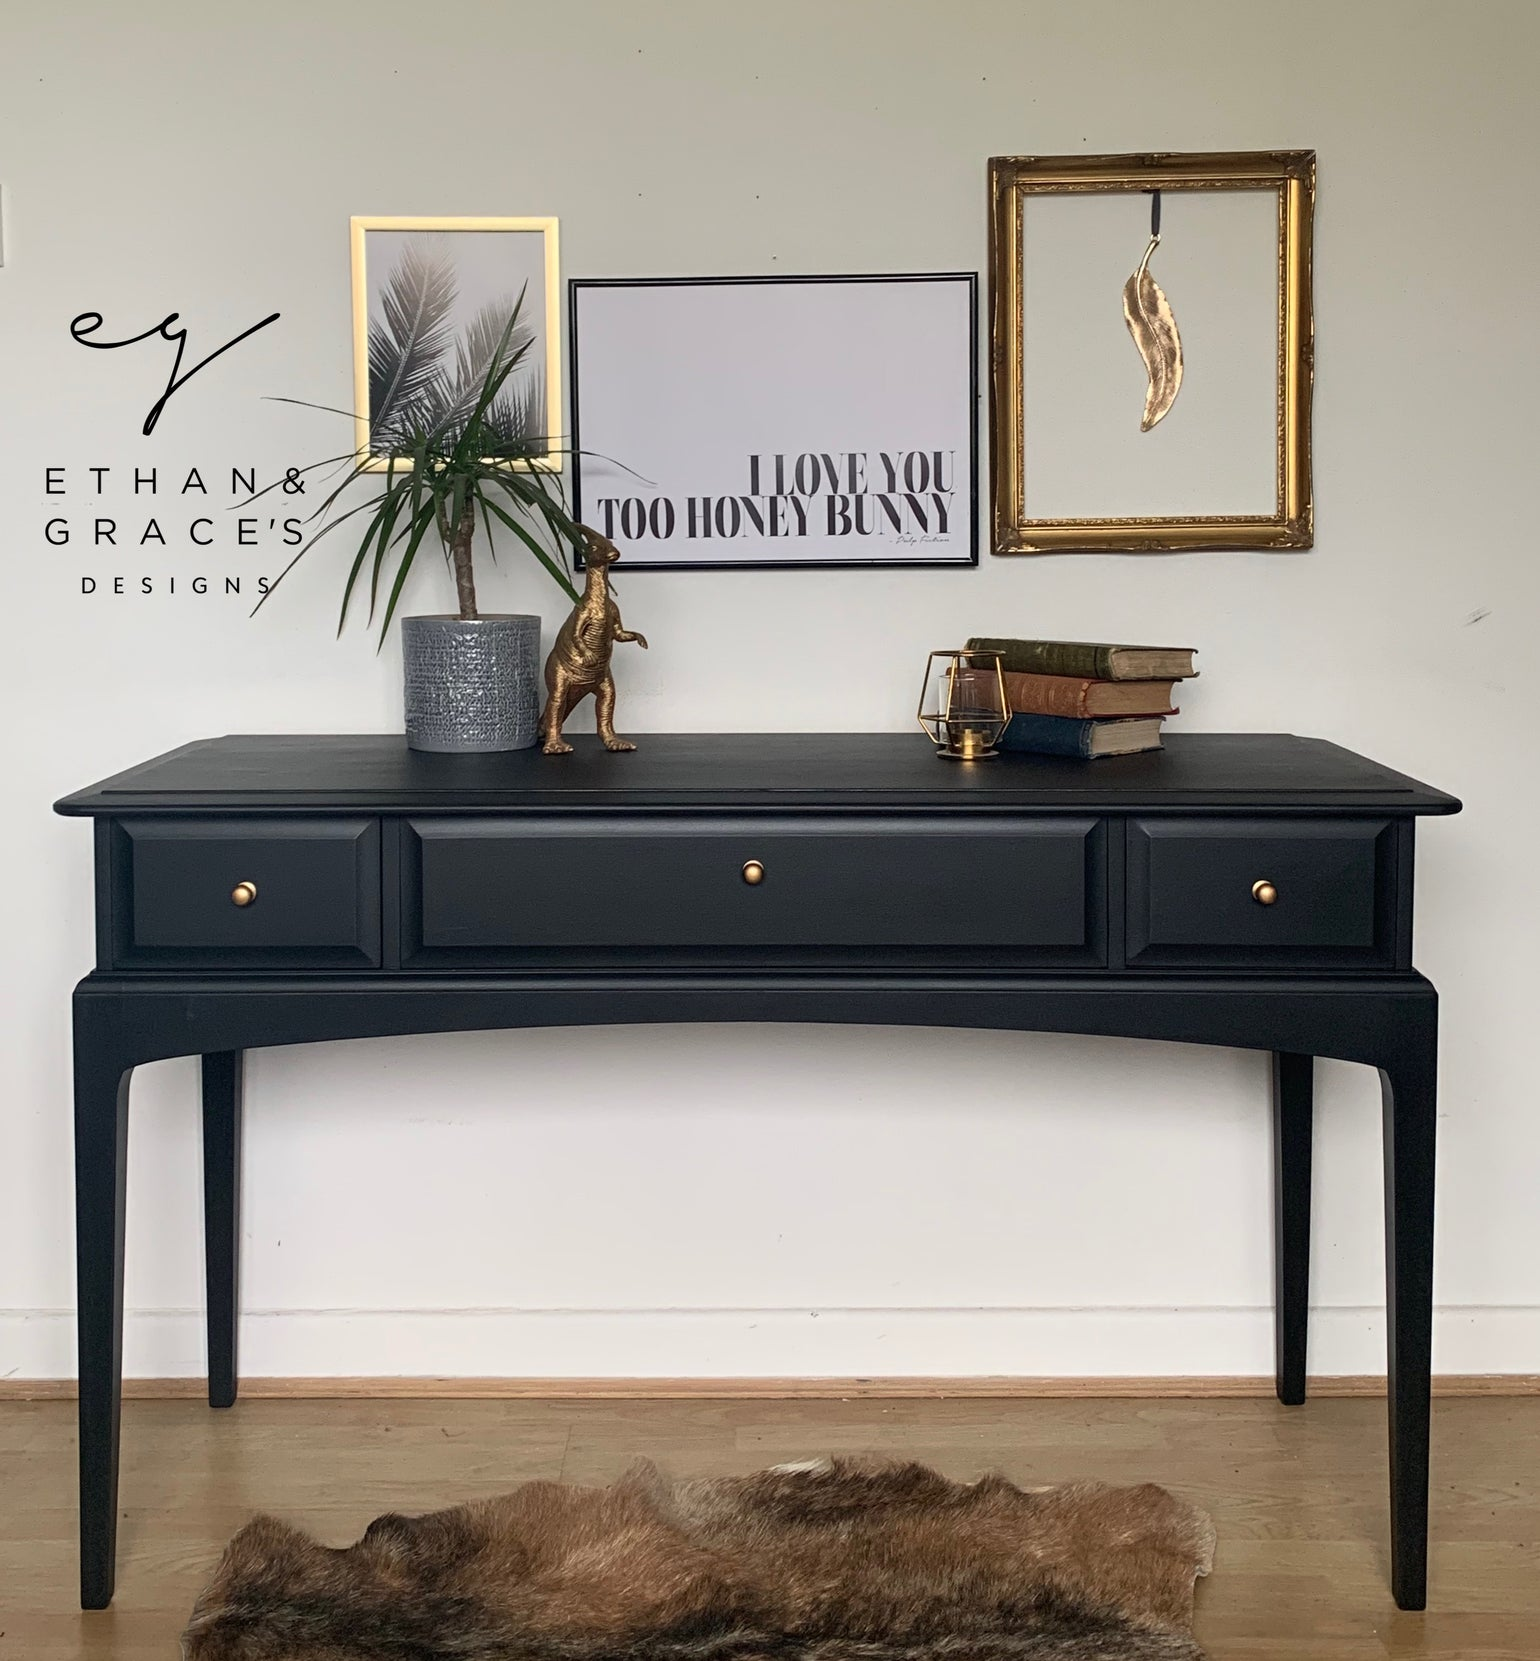 Image of All black Stag mahogany desk/dressing table